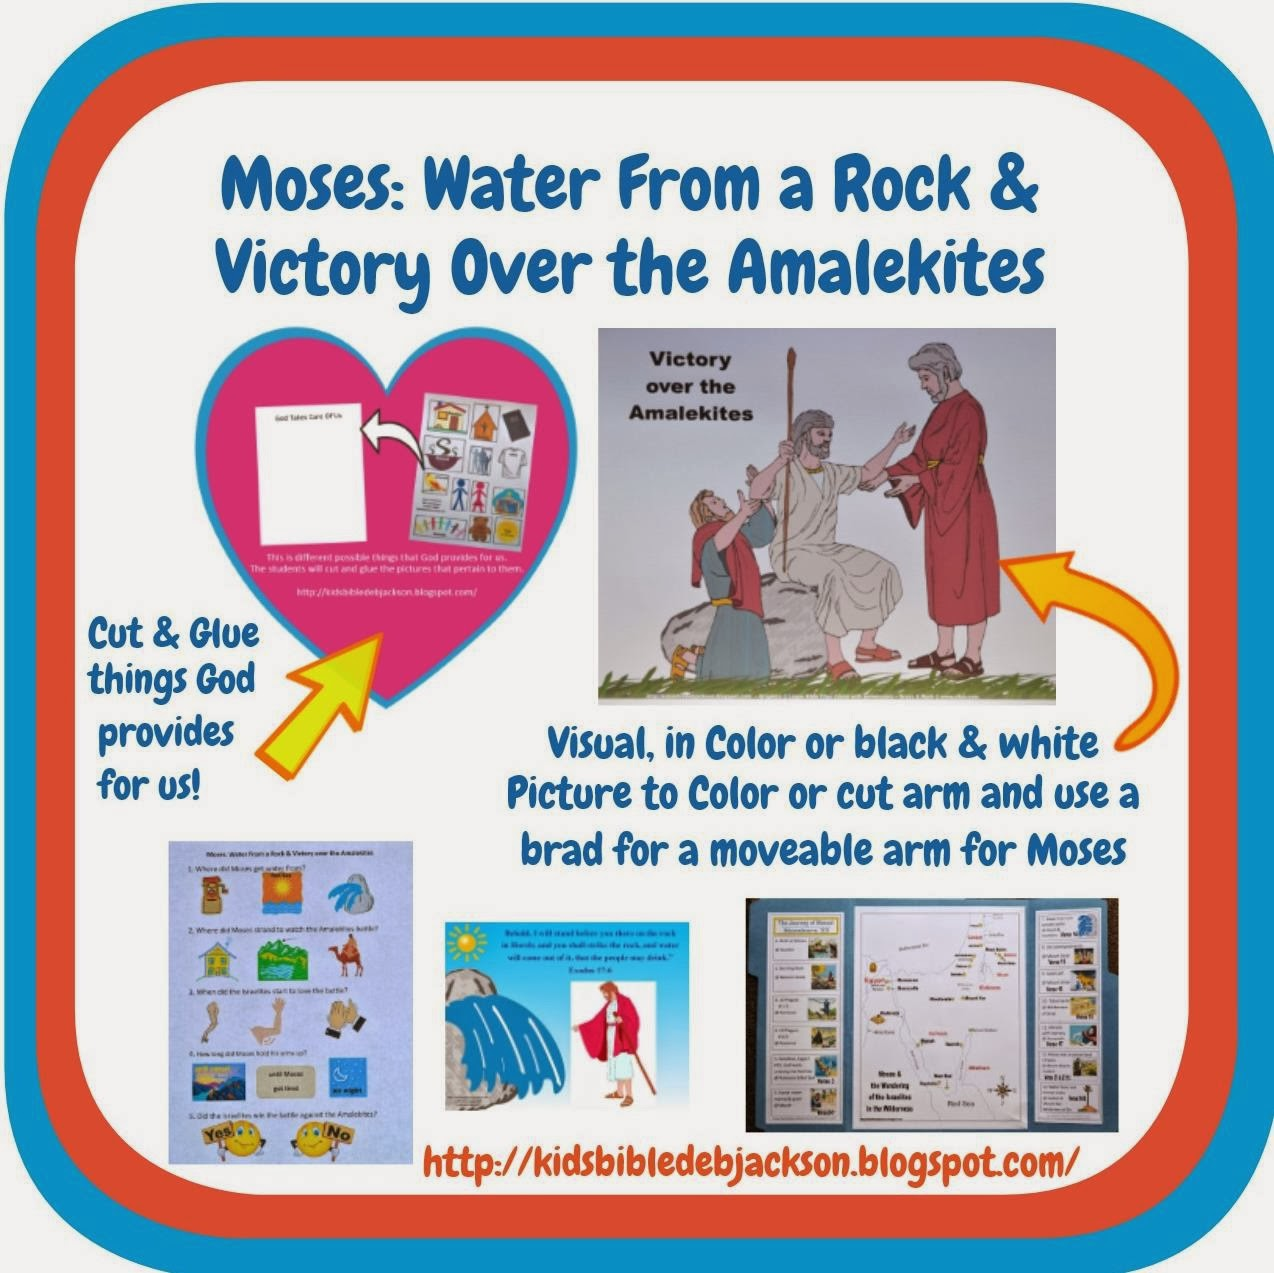 http://kidsbibledebjackson.blogspot.com/2013/10/moses-water-from-rock-victory-over.html